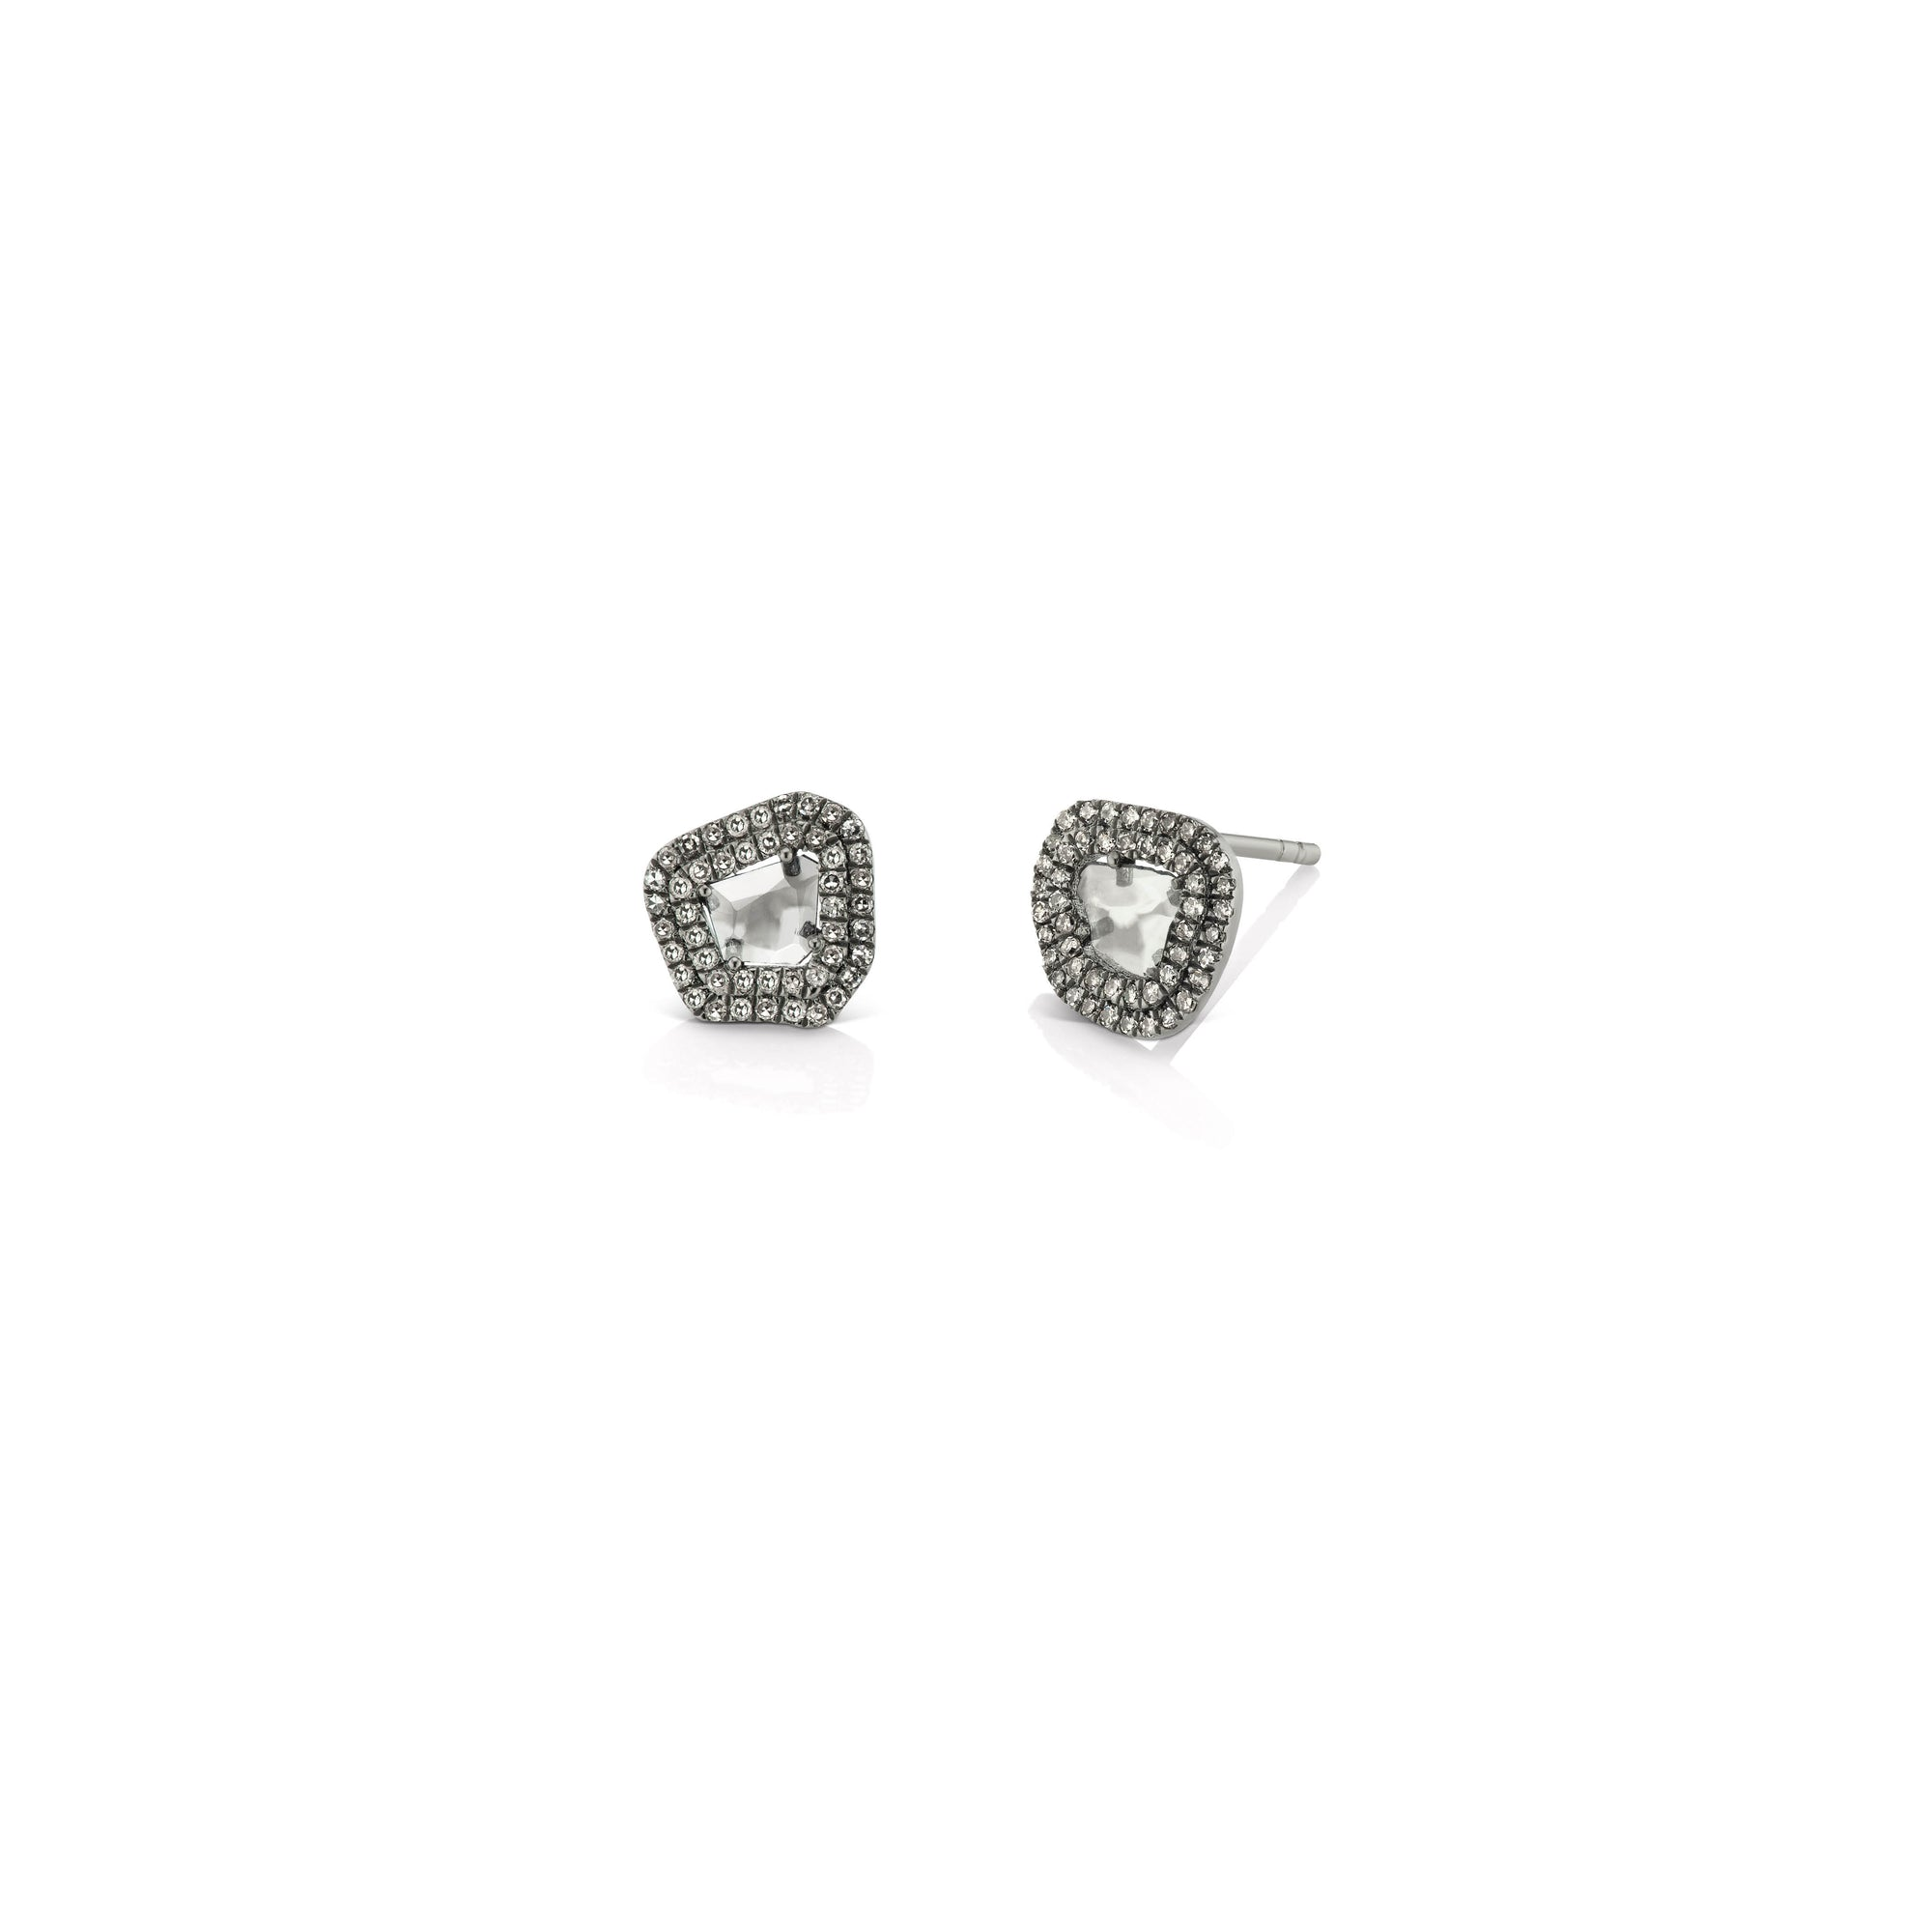 Raw Diamond Slice Stud Earrings With Double Halo Desires By Mikolay